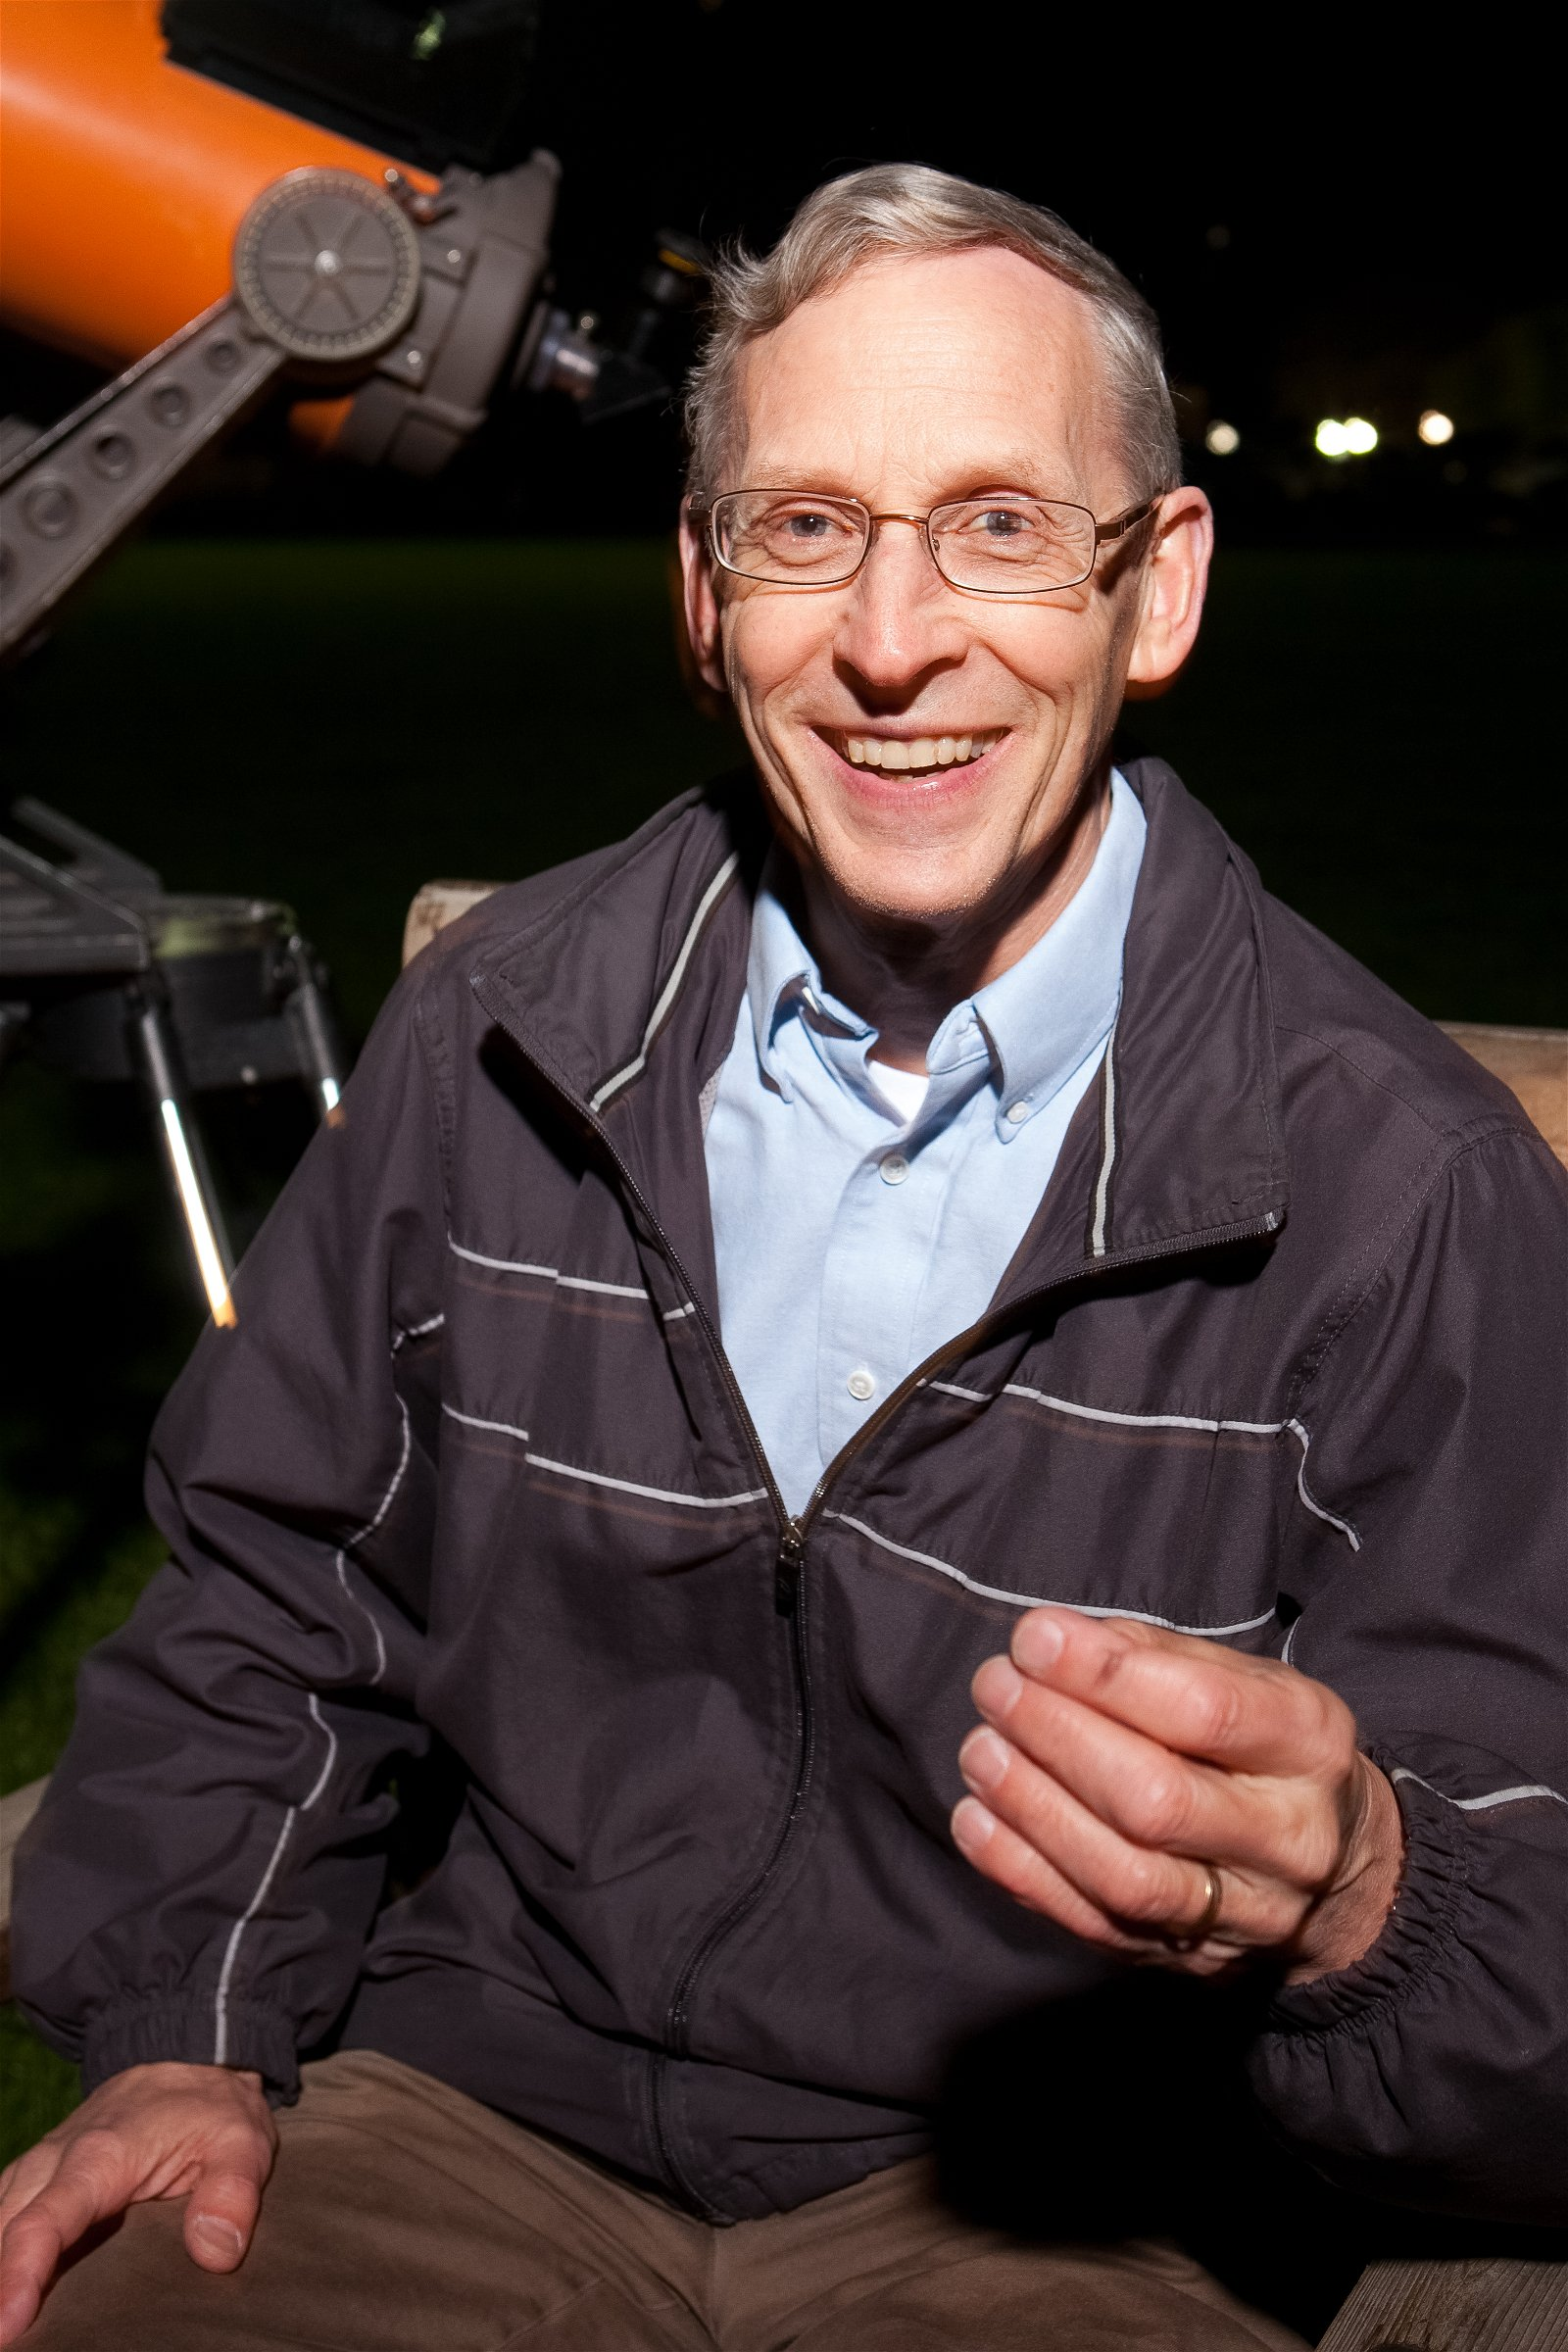 Dr. Don DeYoung